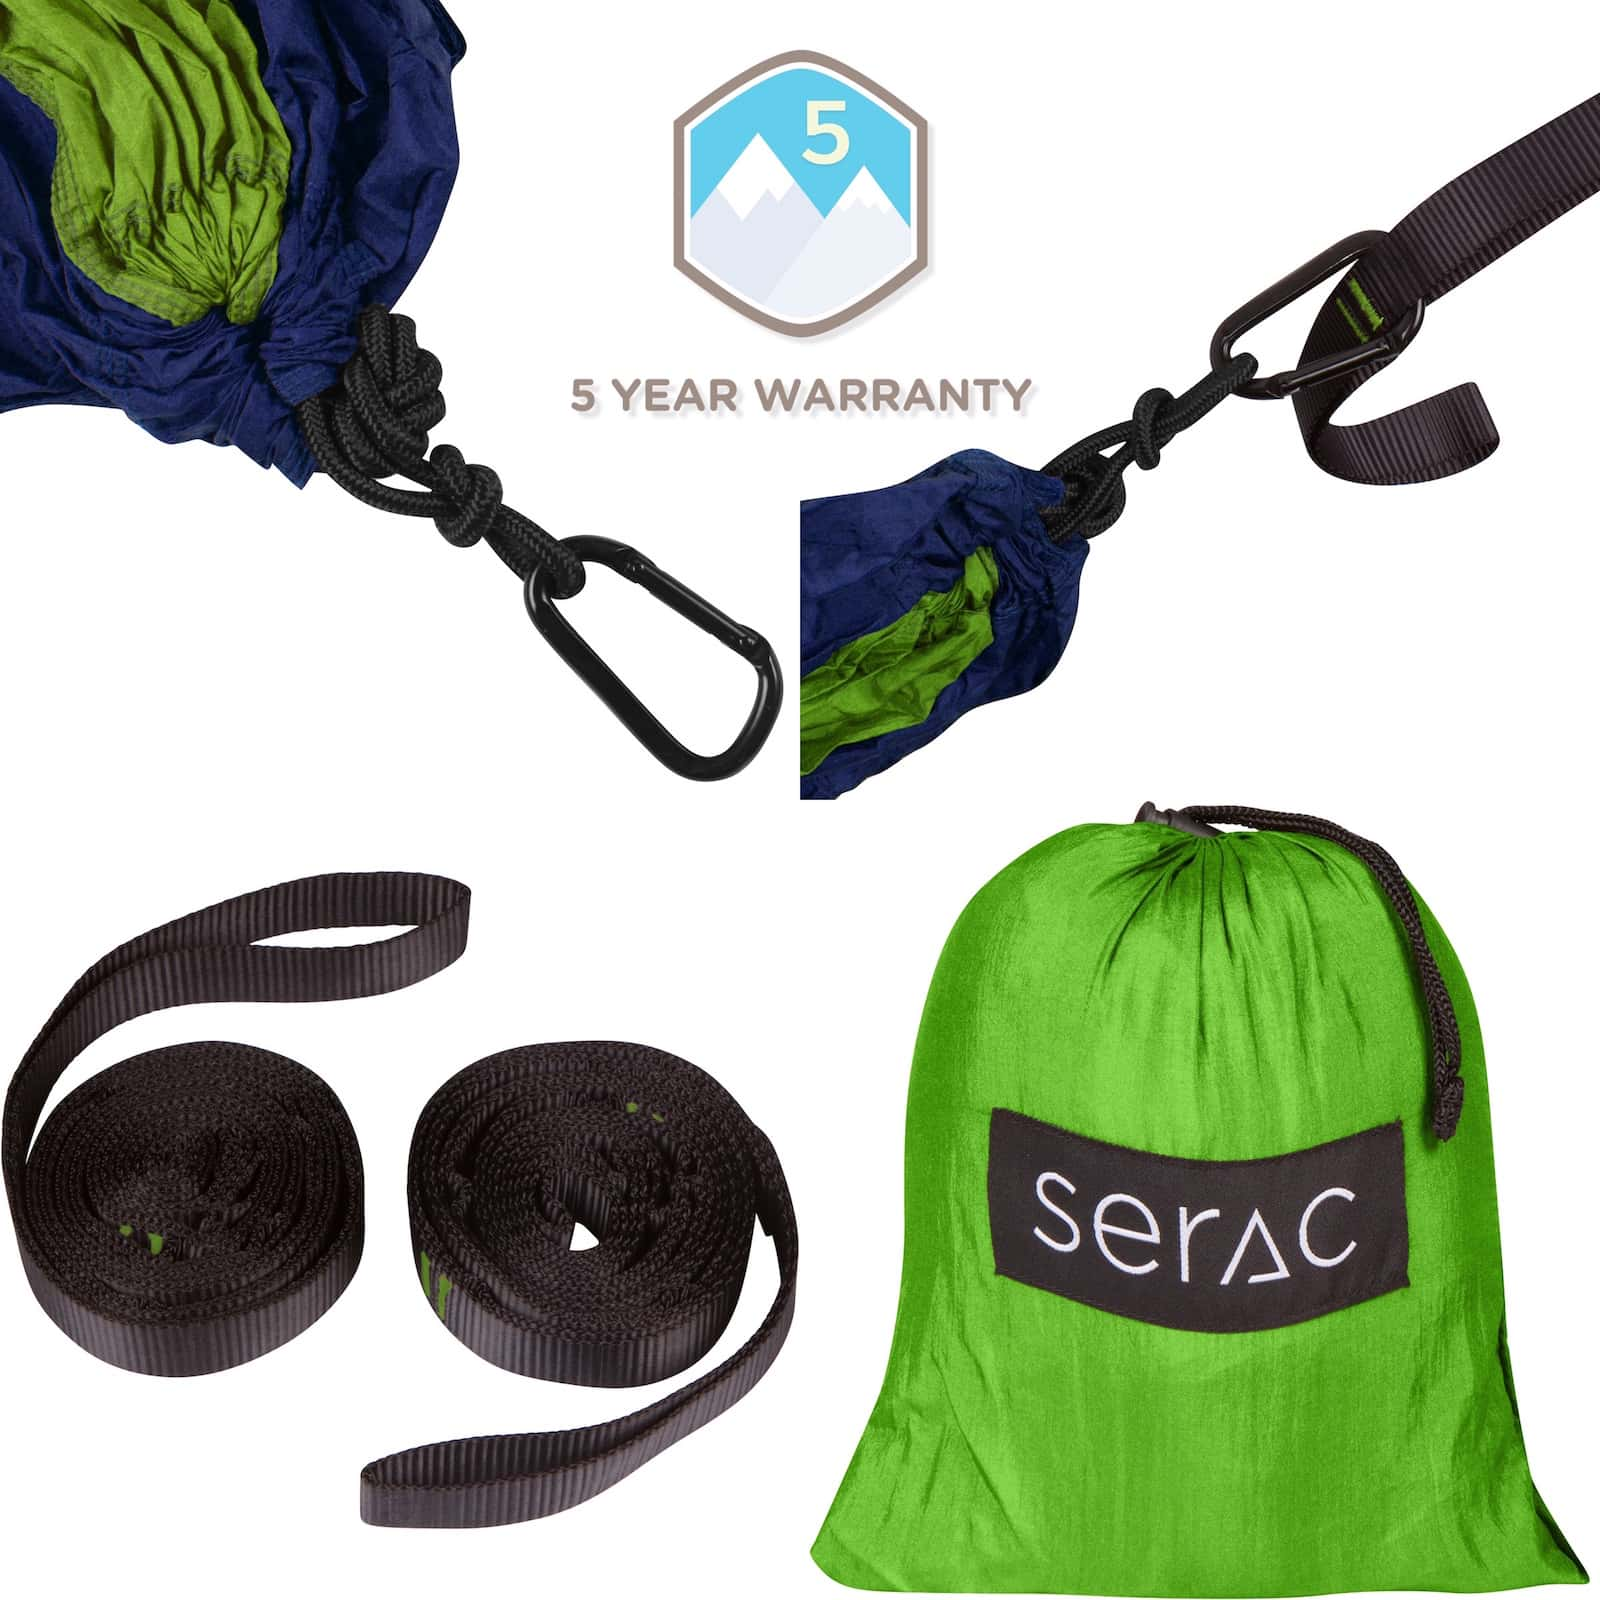 serac classic camping hammock forest stream color with 5 year unlimited warranty